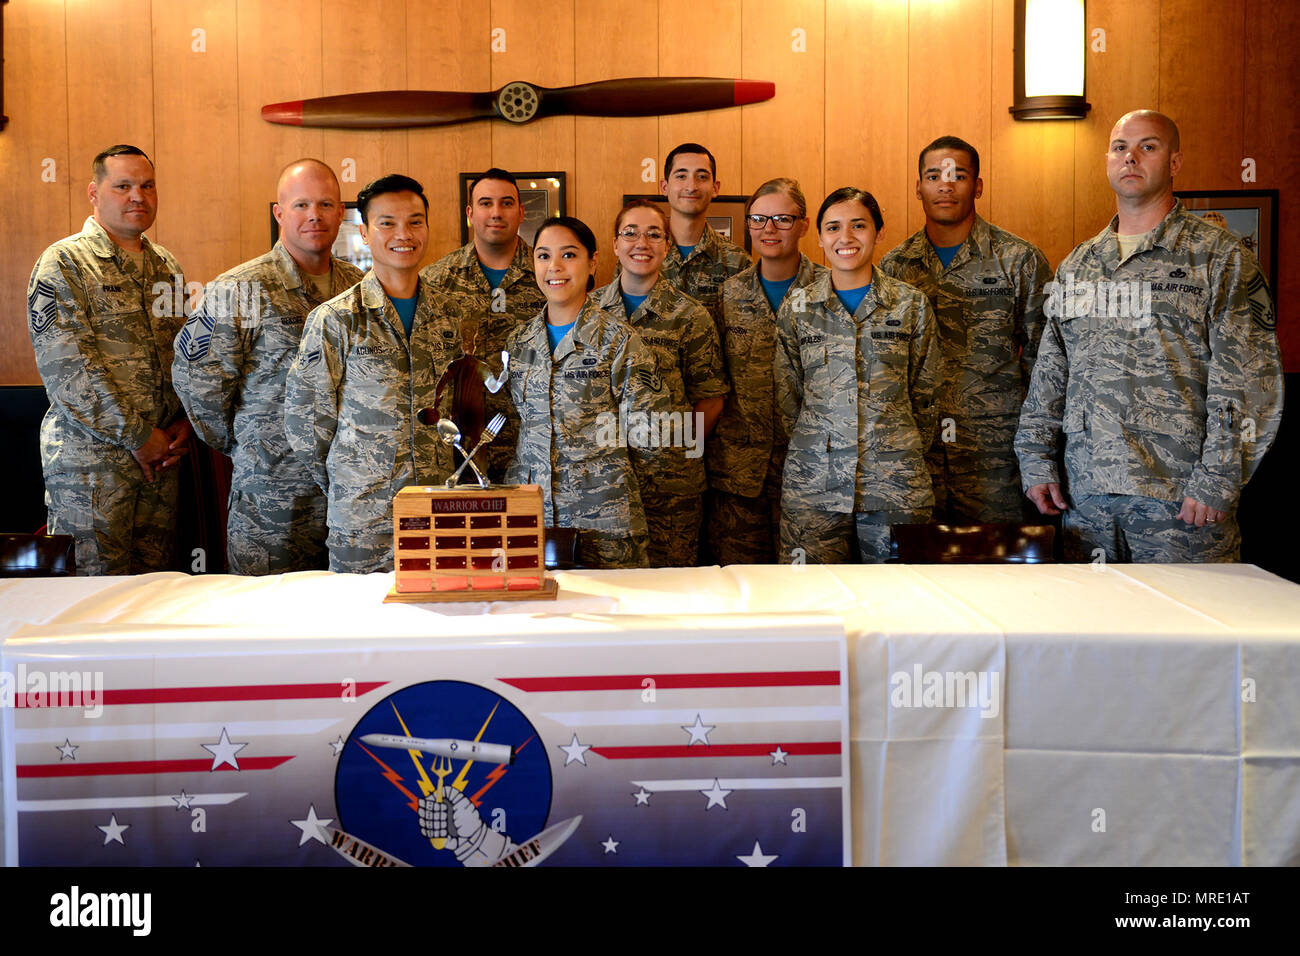 fb0cb65b572 Warrior Chef teams and judges pose for a photo after the Warrior Chef  competition at the